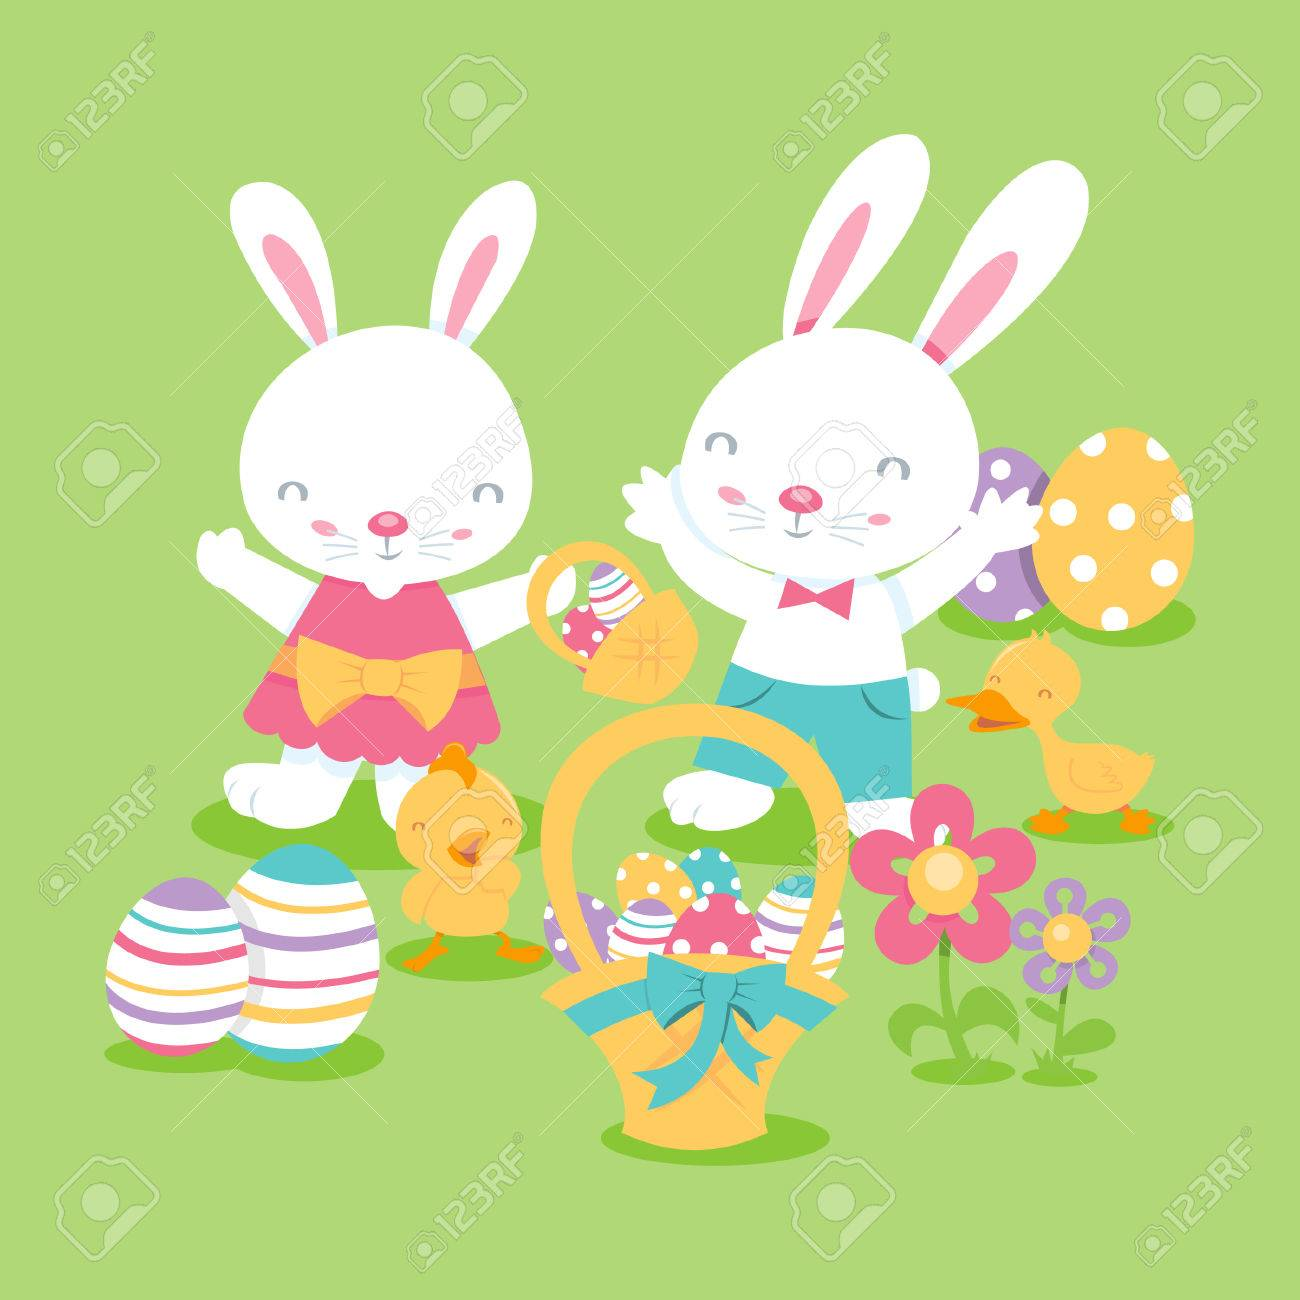 a cartoon illustration of super cute easter scene with a bunny